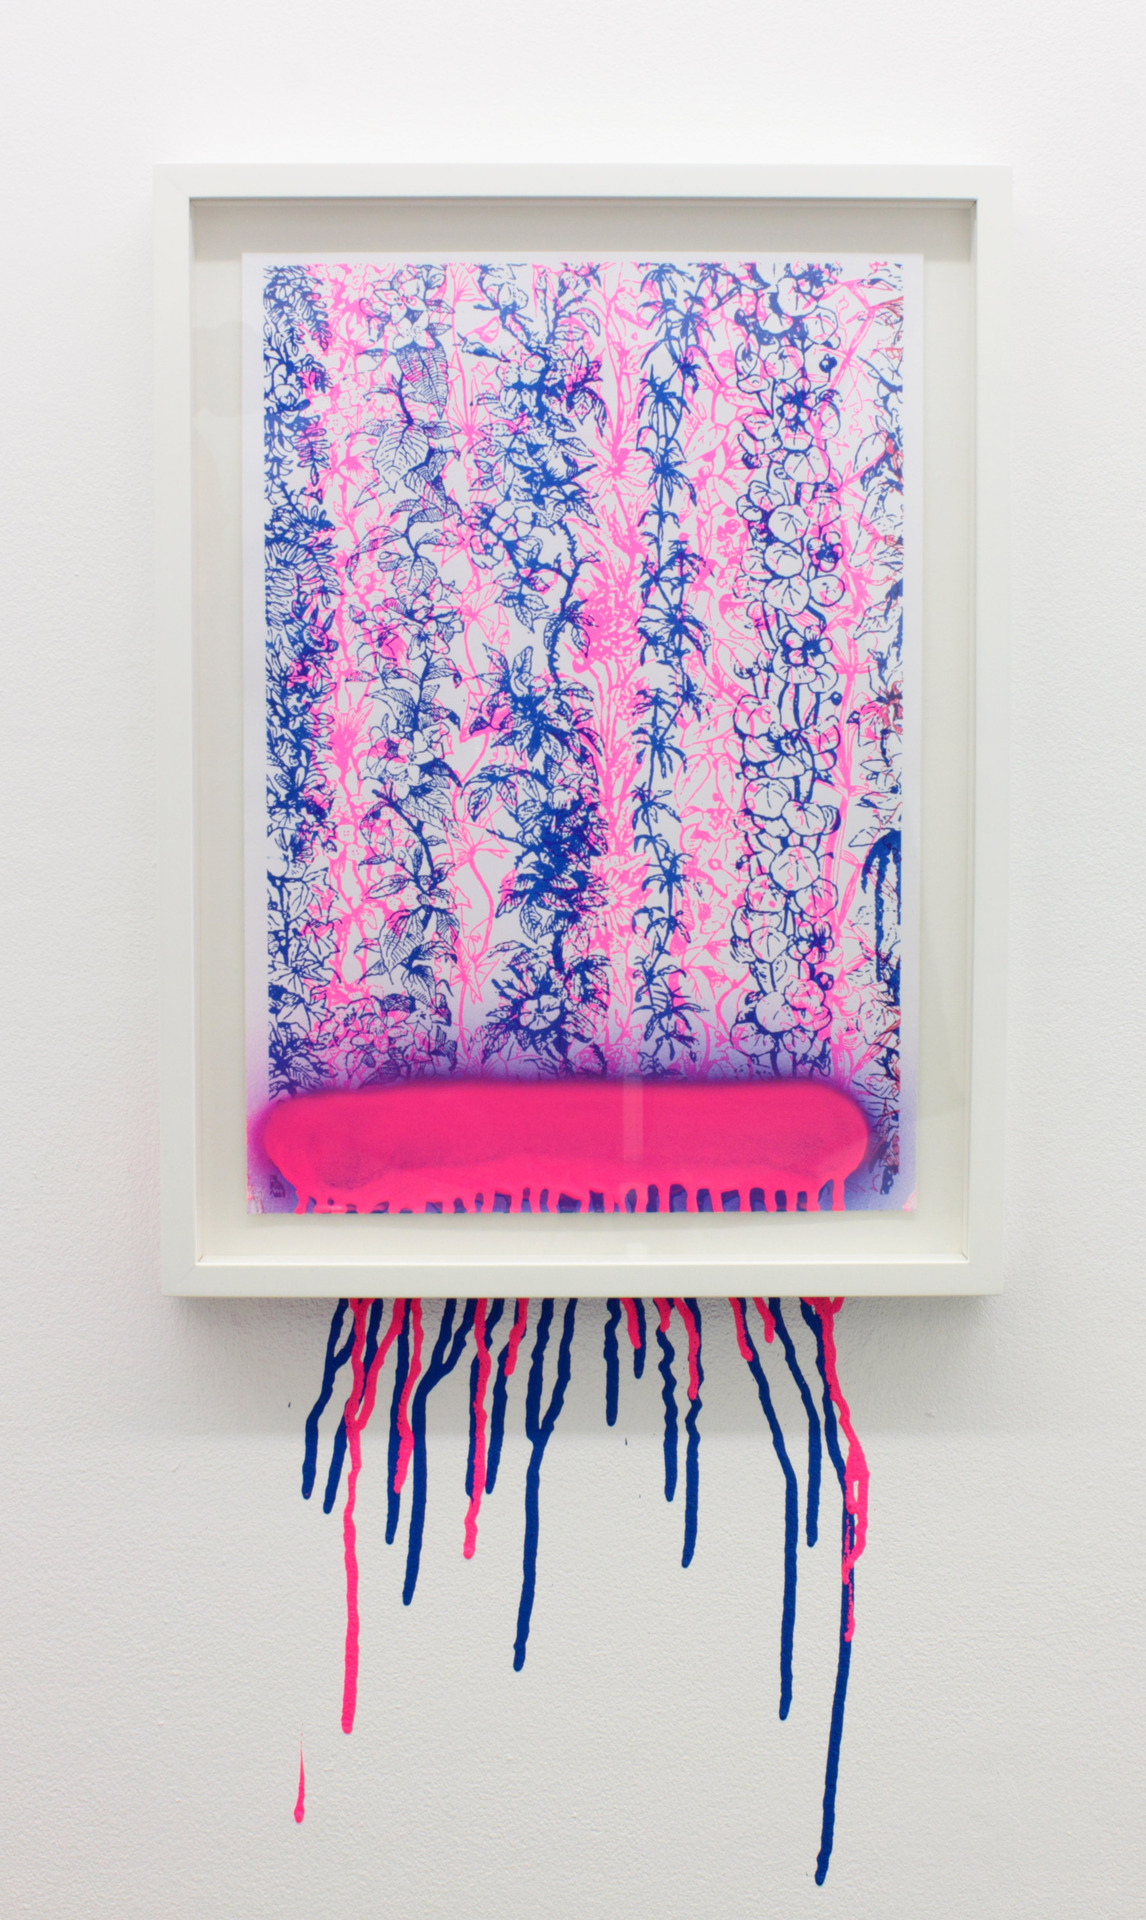 New Romantic (Pink and Blue)2012Spray paint, A3 Risograph print, frame37cm x 49cm